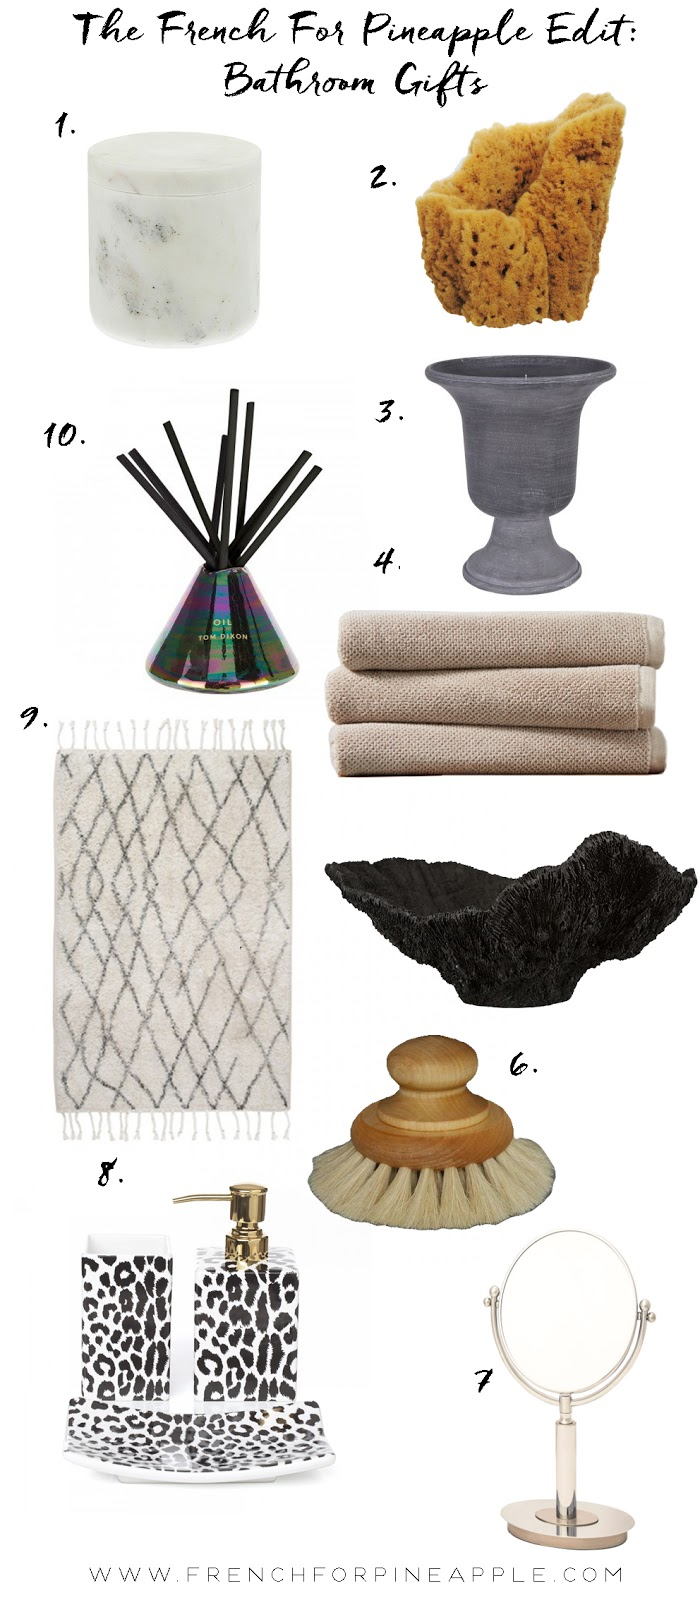 French For Pineapple Blog - Bathroom Gift Guide